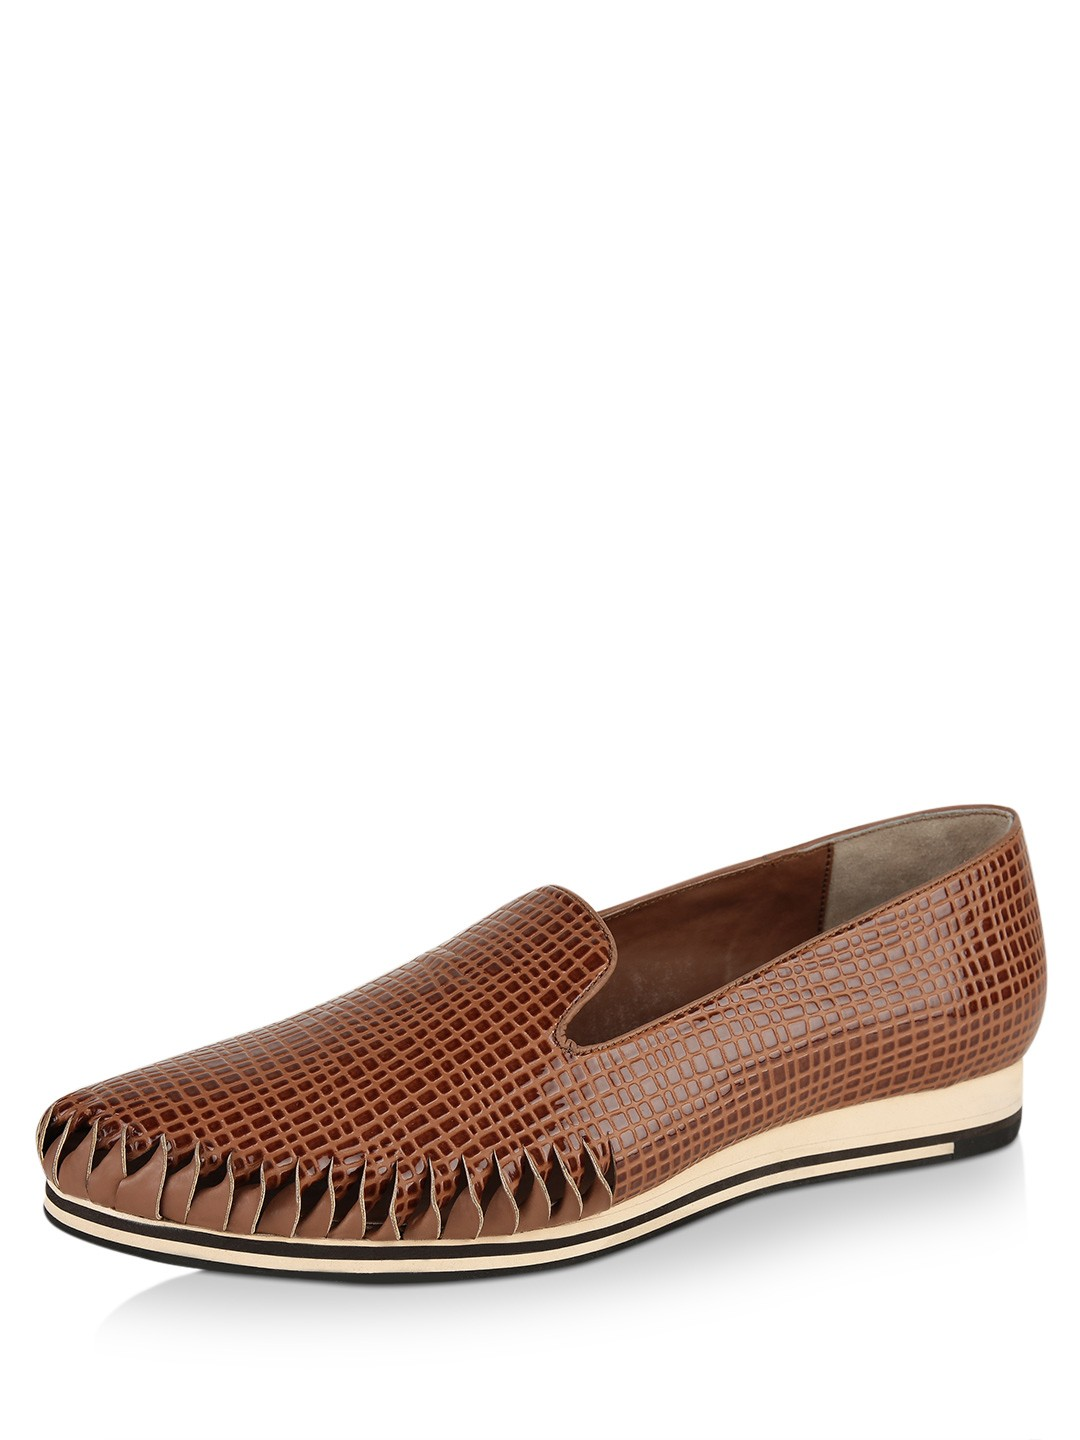 Best Loafer Shoes Brand In India